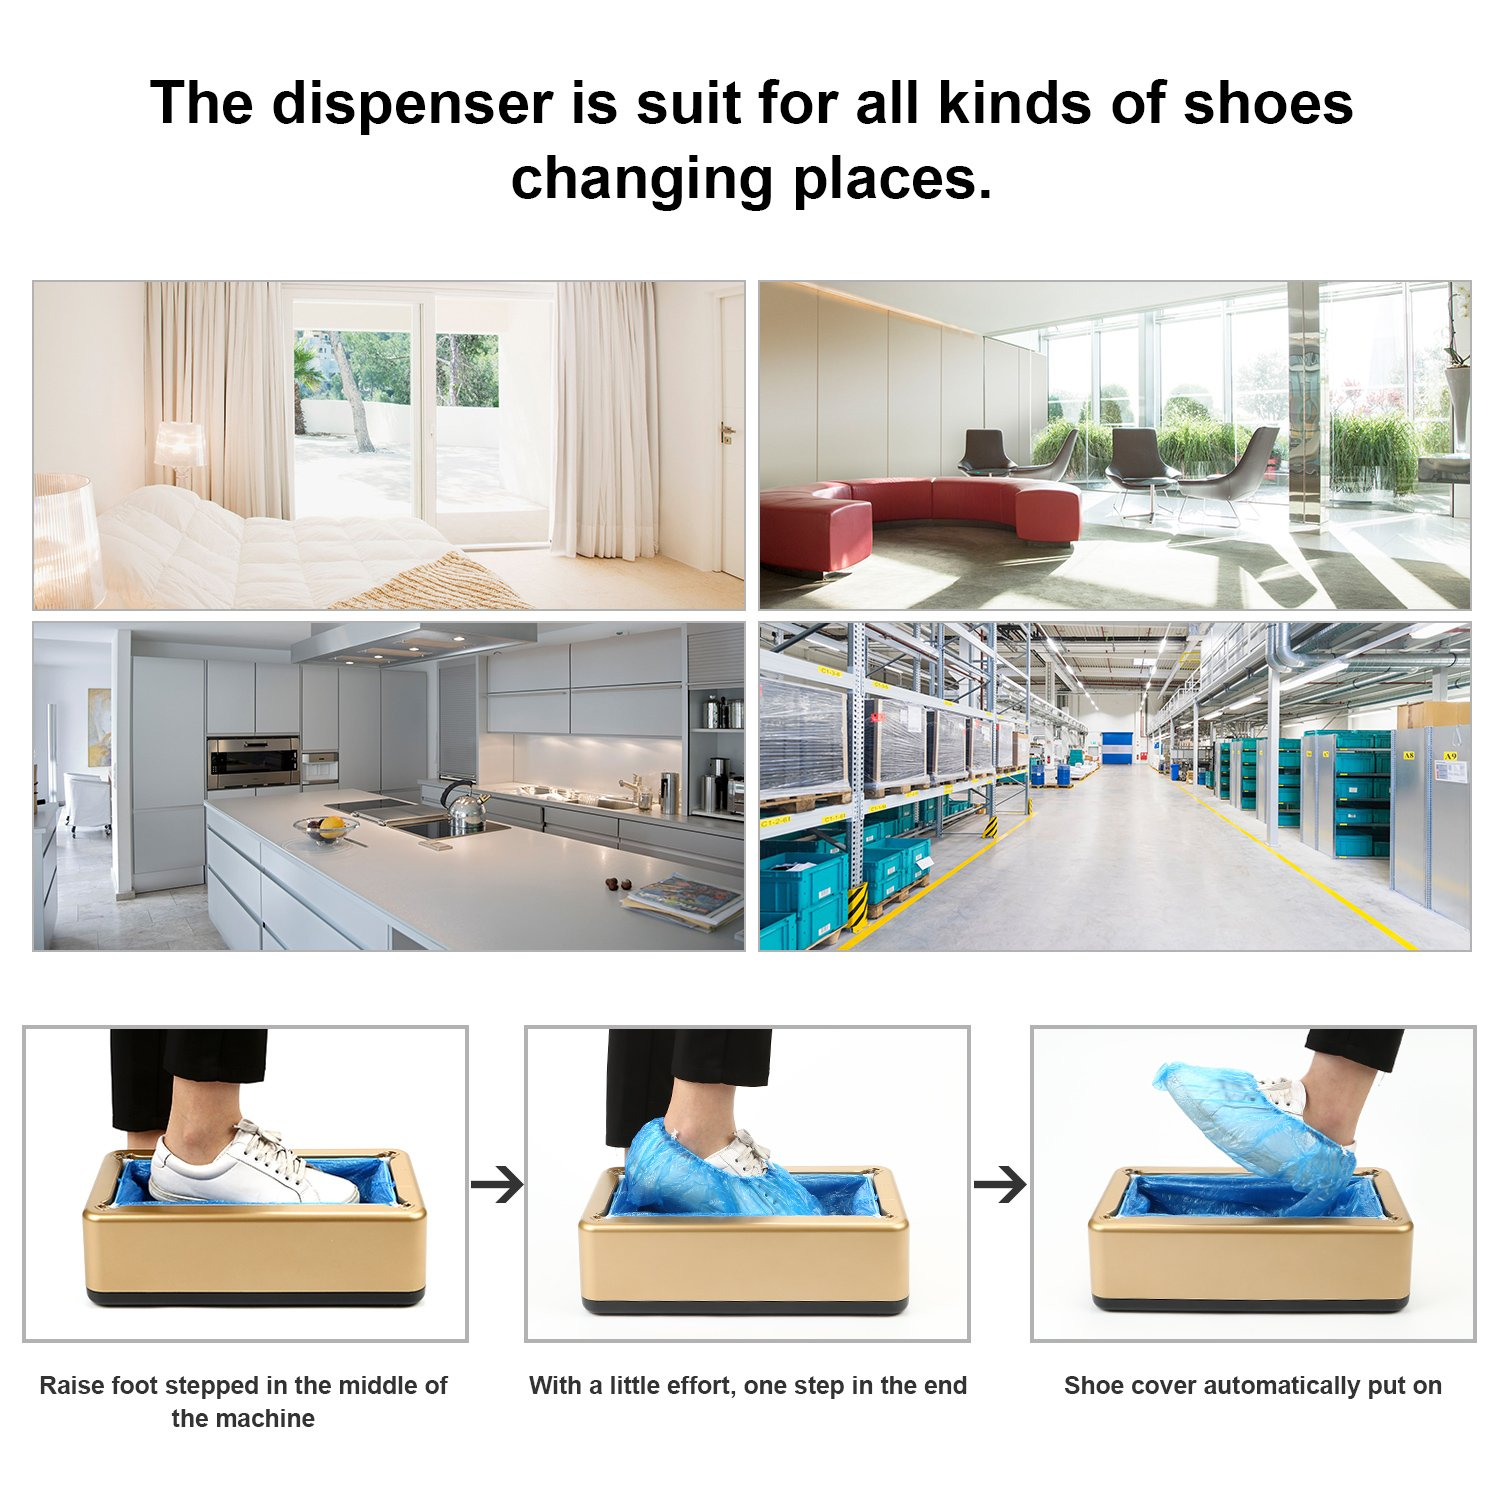 Shoe Cover Machine, RONRI Automatic Shoe Cover Dispenser with 200pc Disposable Slipcover, Portable Shoes Boot Cover Dispenser for Medical, Home, Shop, Office by RONRI (Image #8)